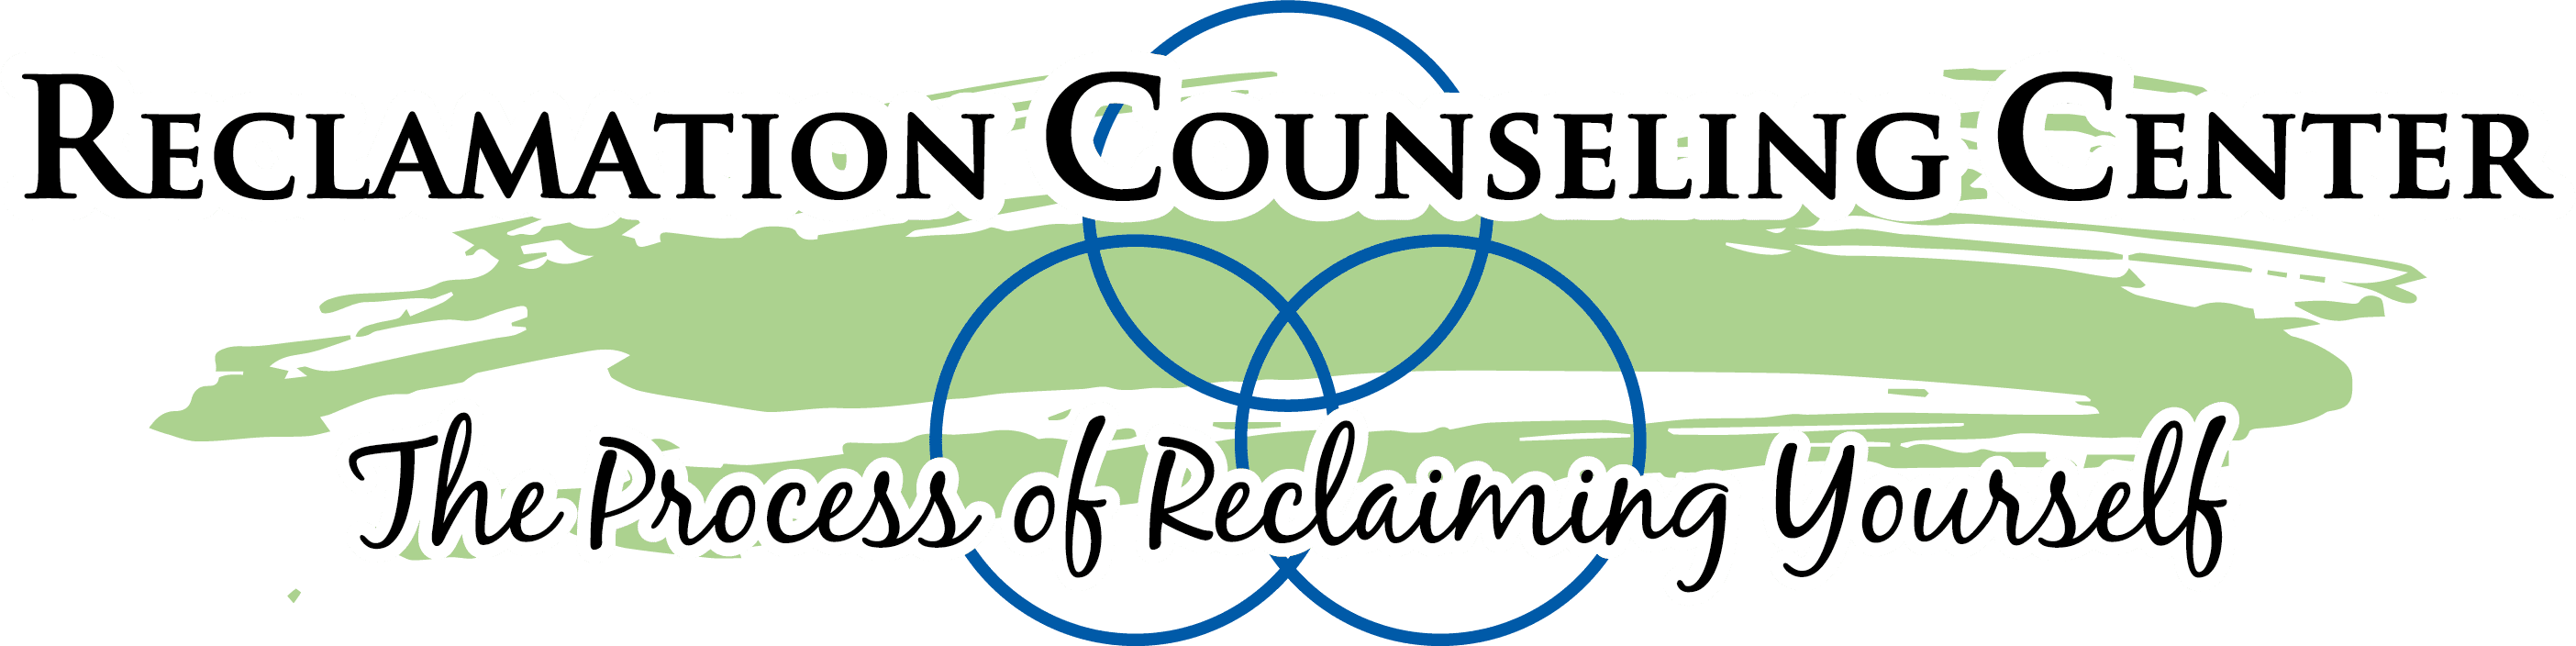 Reclamation Counseling Center